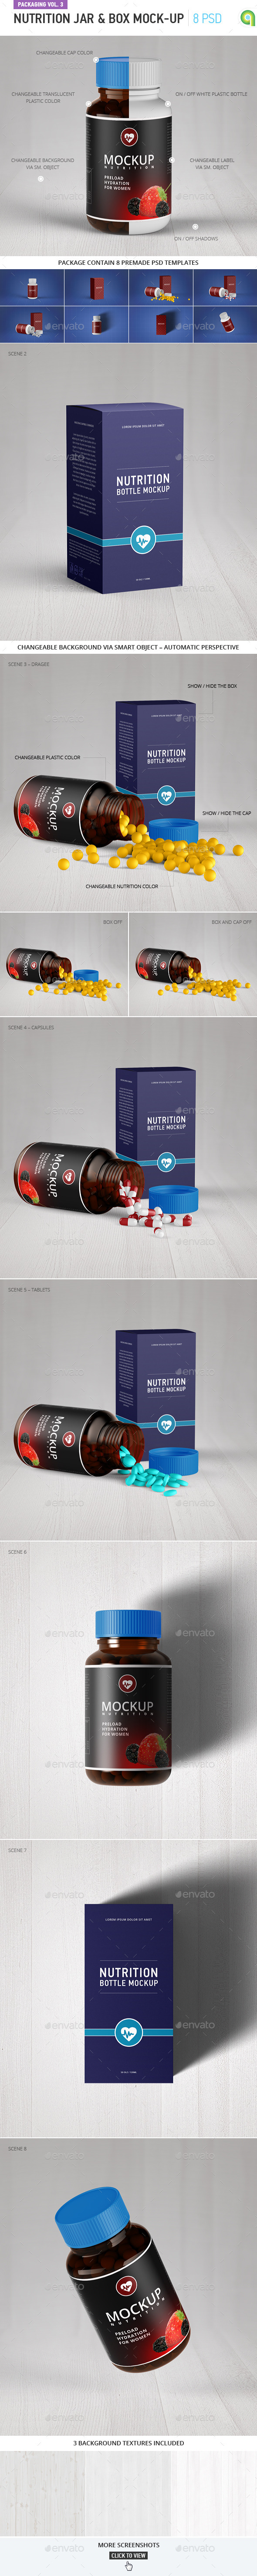 Nutrition jar and box mock-up - Miscellaneous Packaging